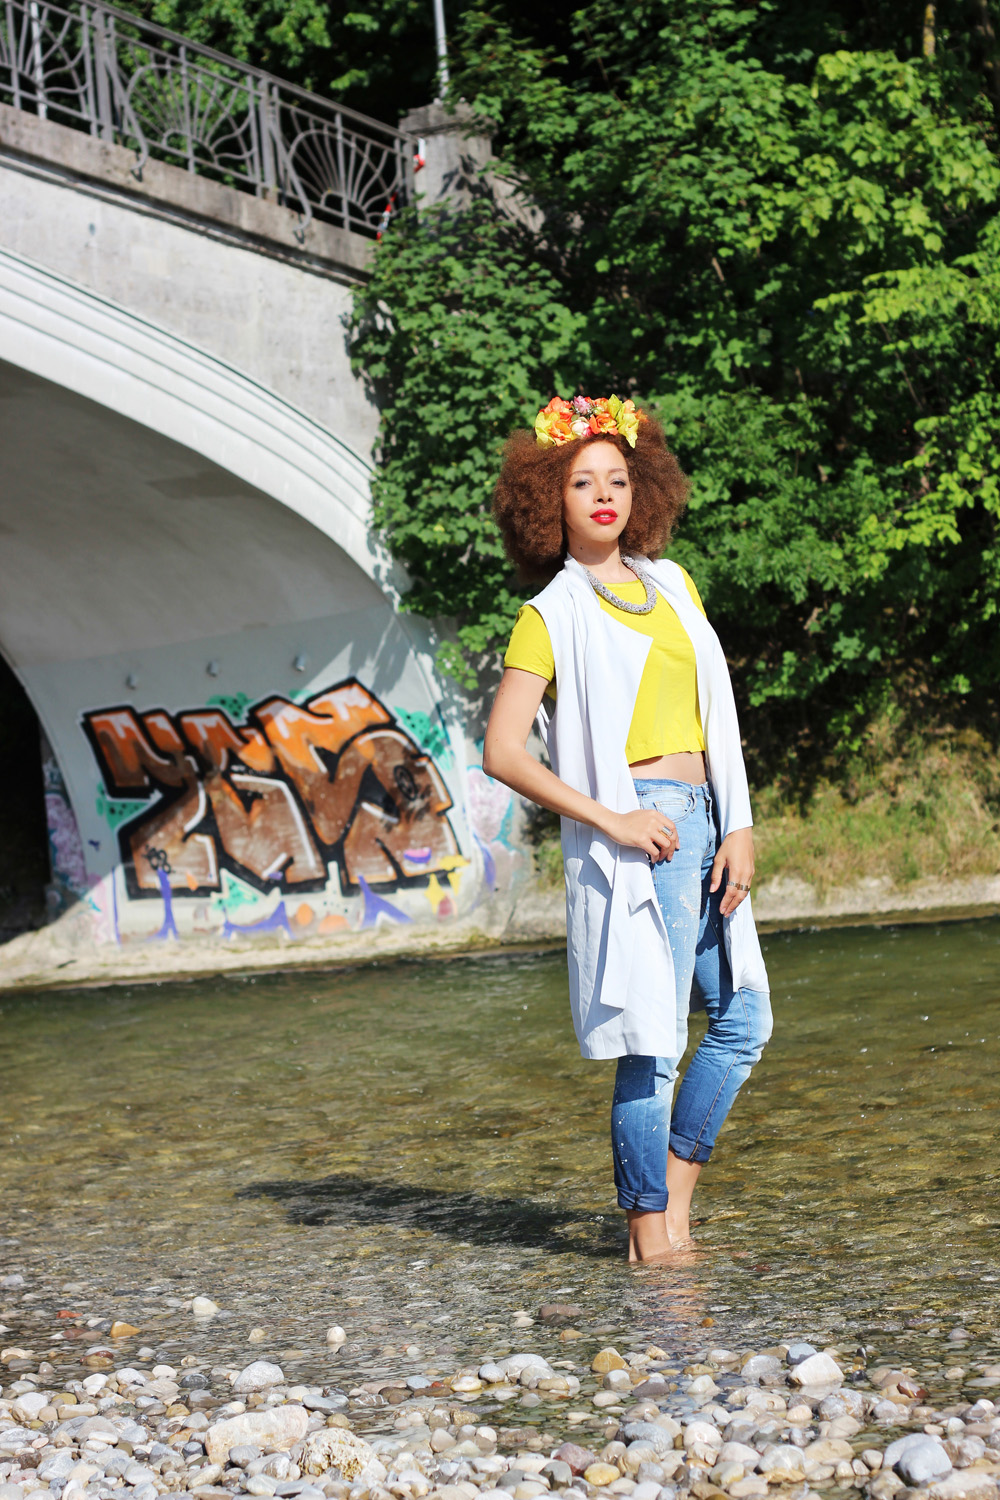 fatimayarie-flowerwreath-flowerpower-jeans-yellow-croptop-vest-img_9127